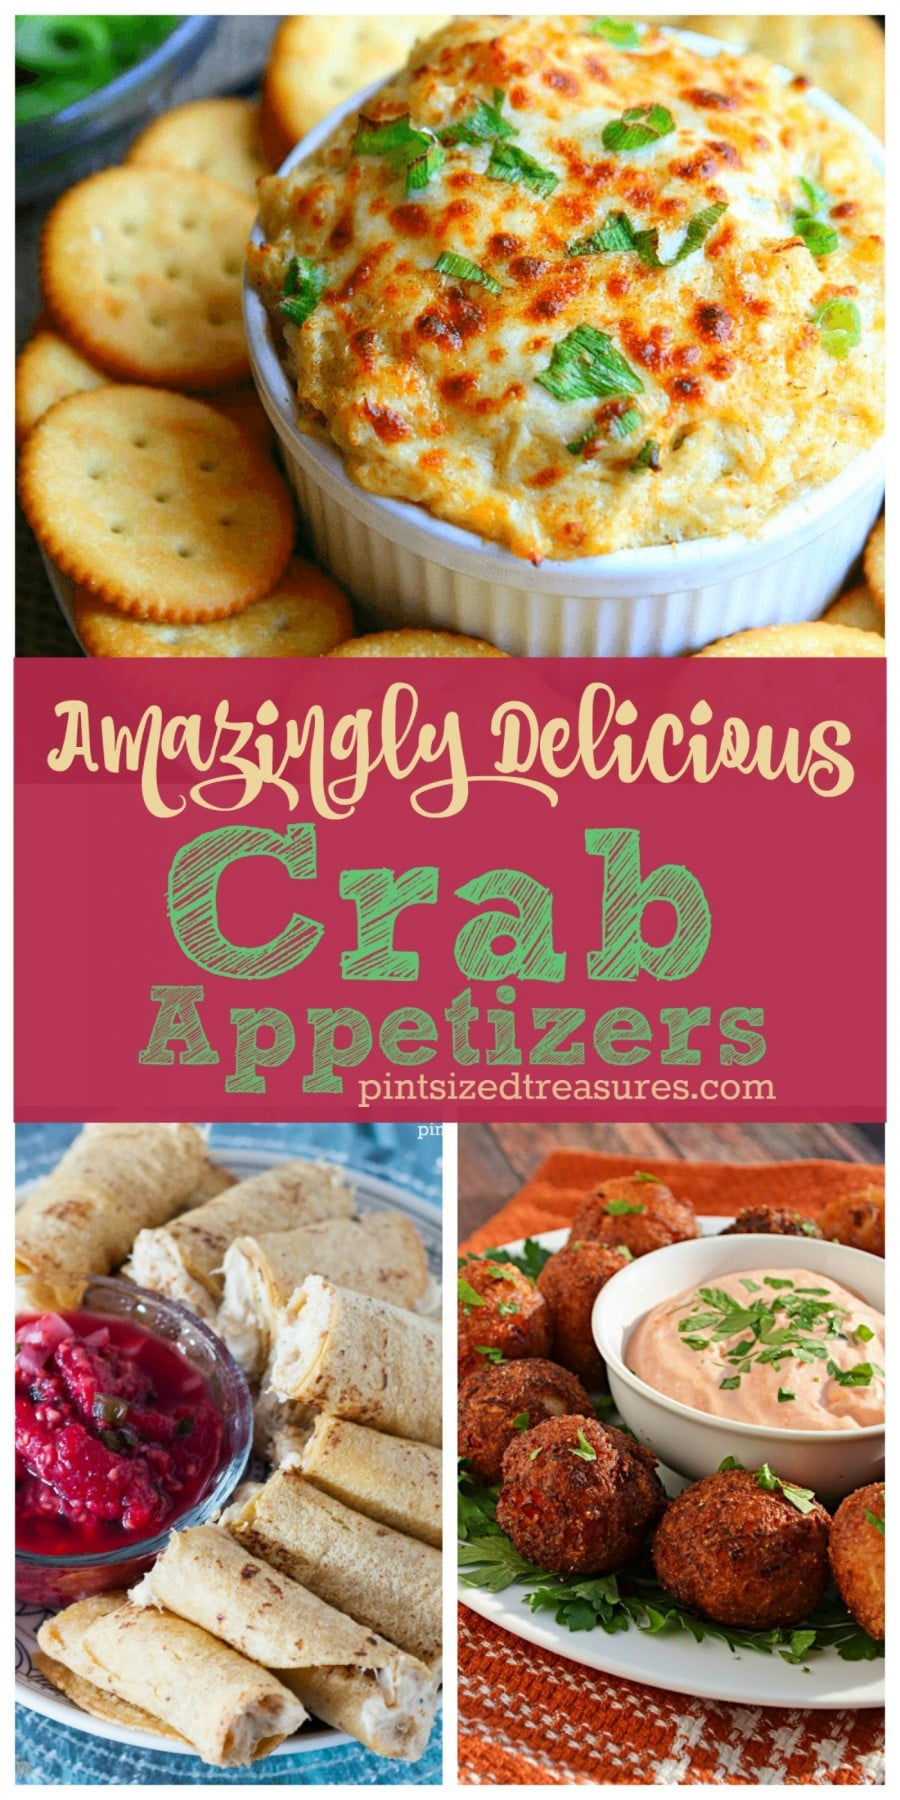 crab appetizers ideas